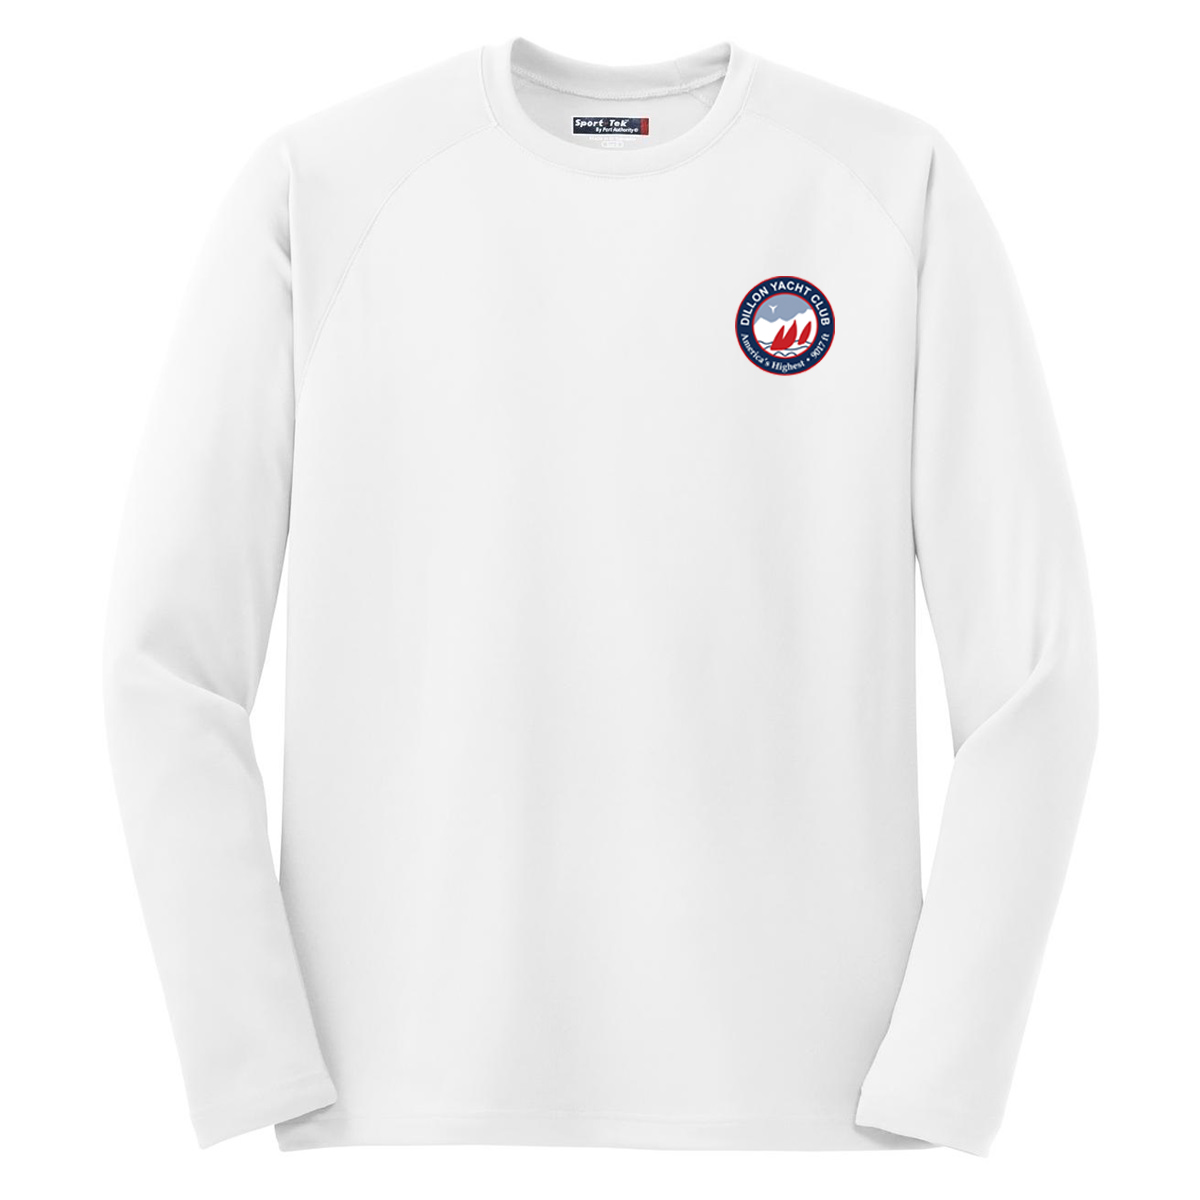 Dillon Yacht Club - Men's L/S TECH TEE